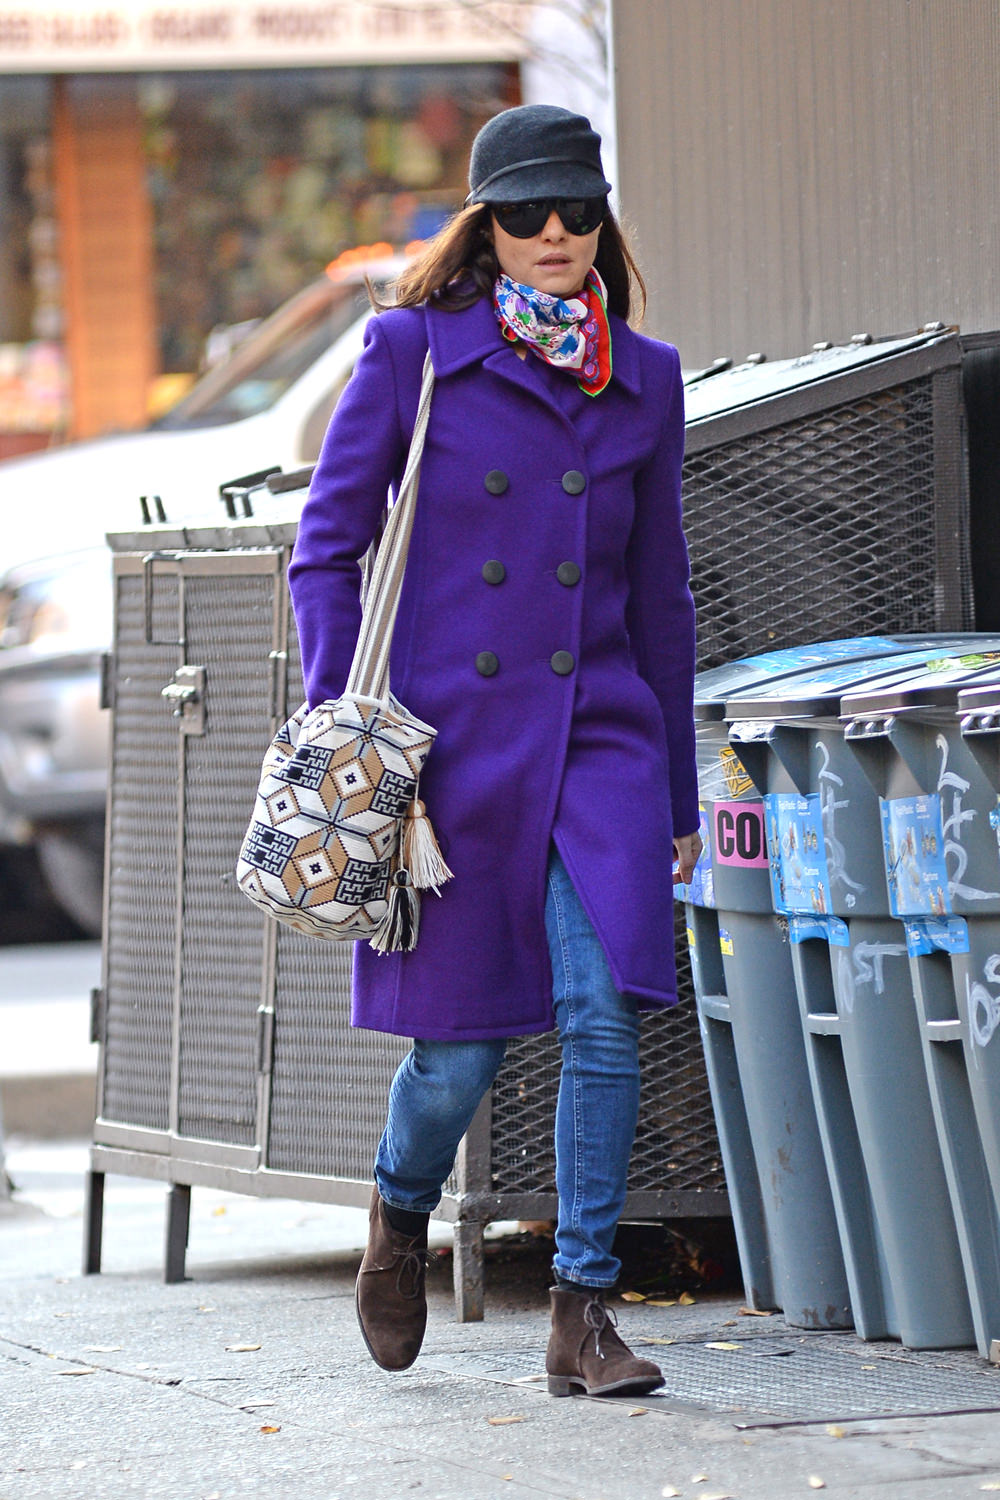 rachel-weisz-out-about-nyc-street-style-fashion-tom-lorenzo-site-1